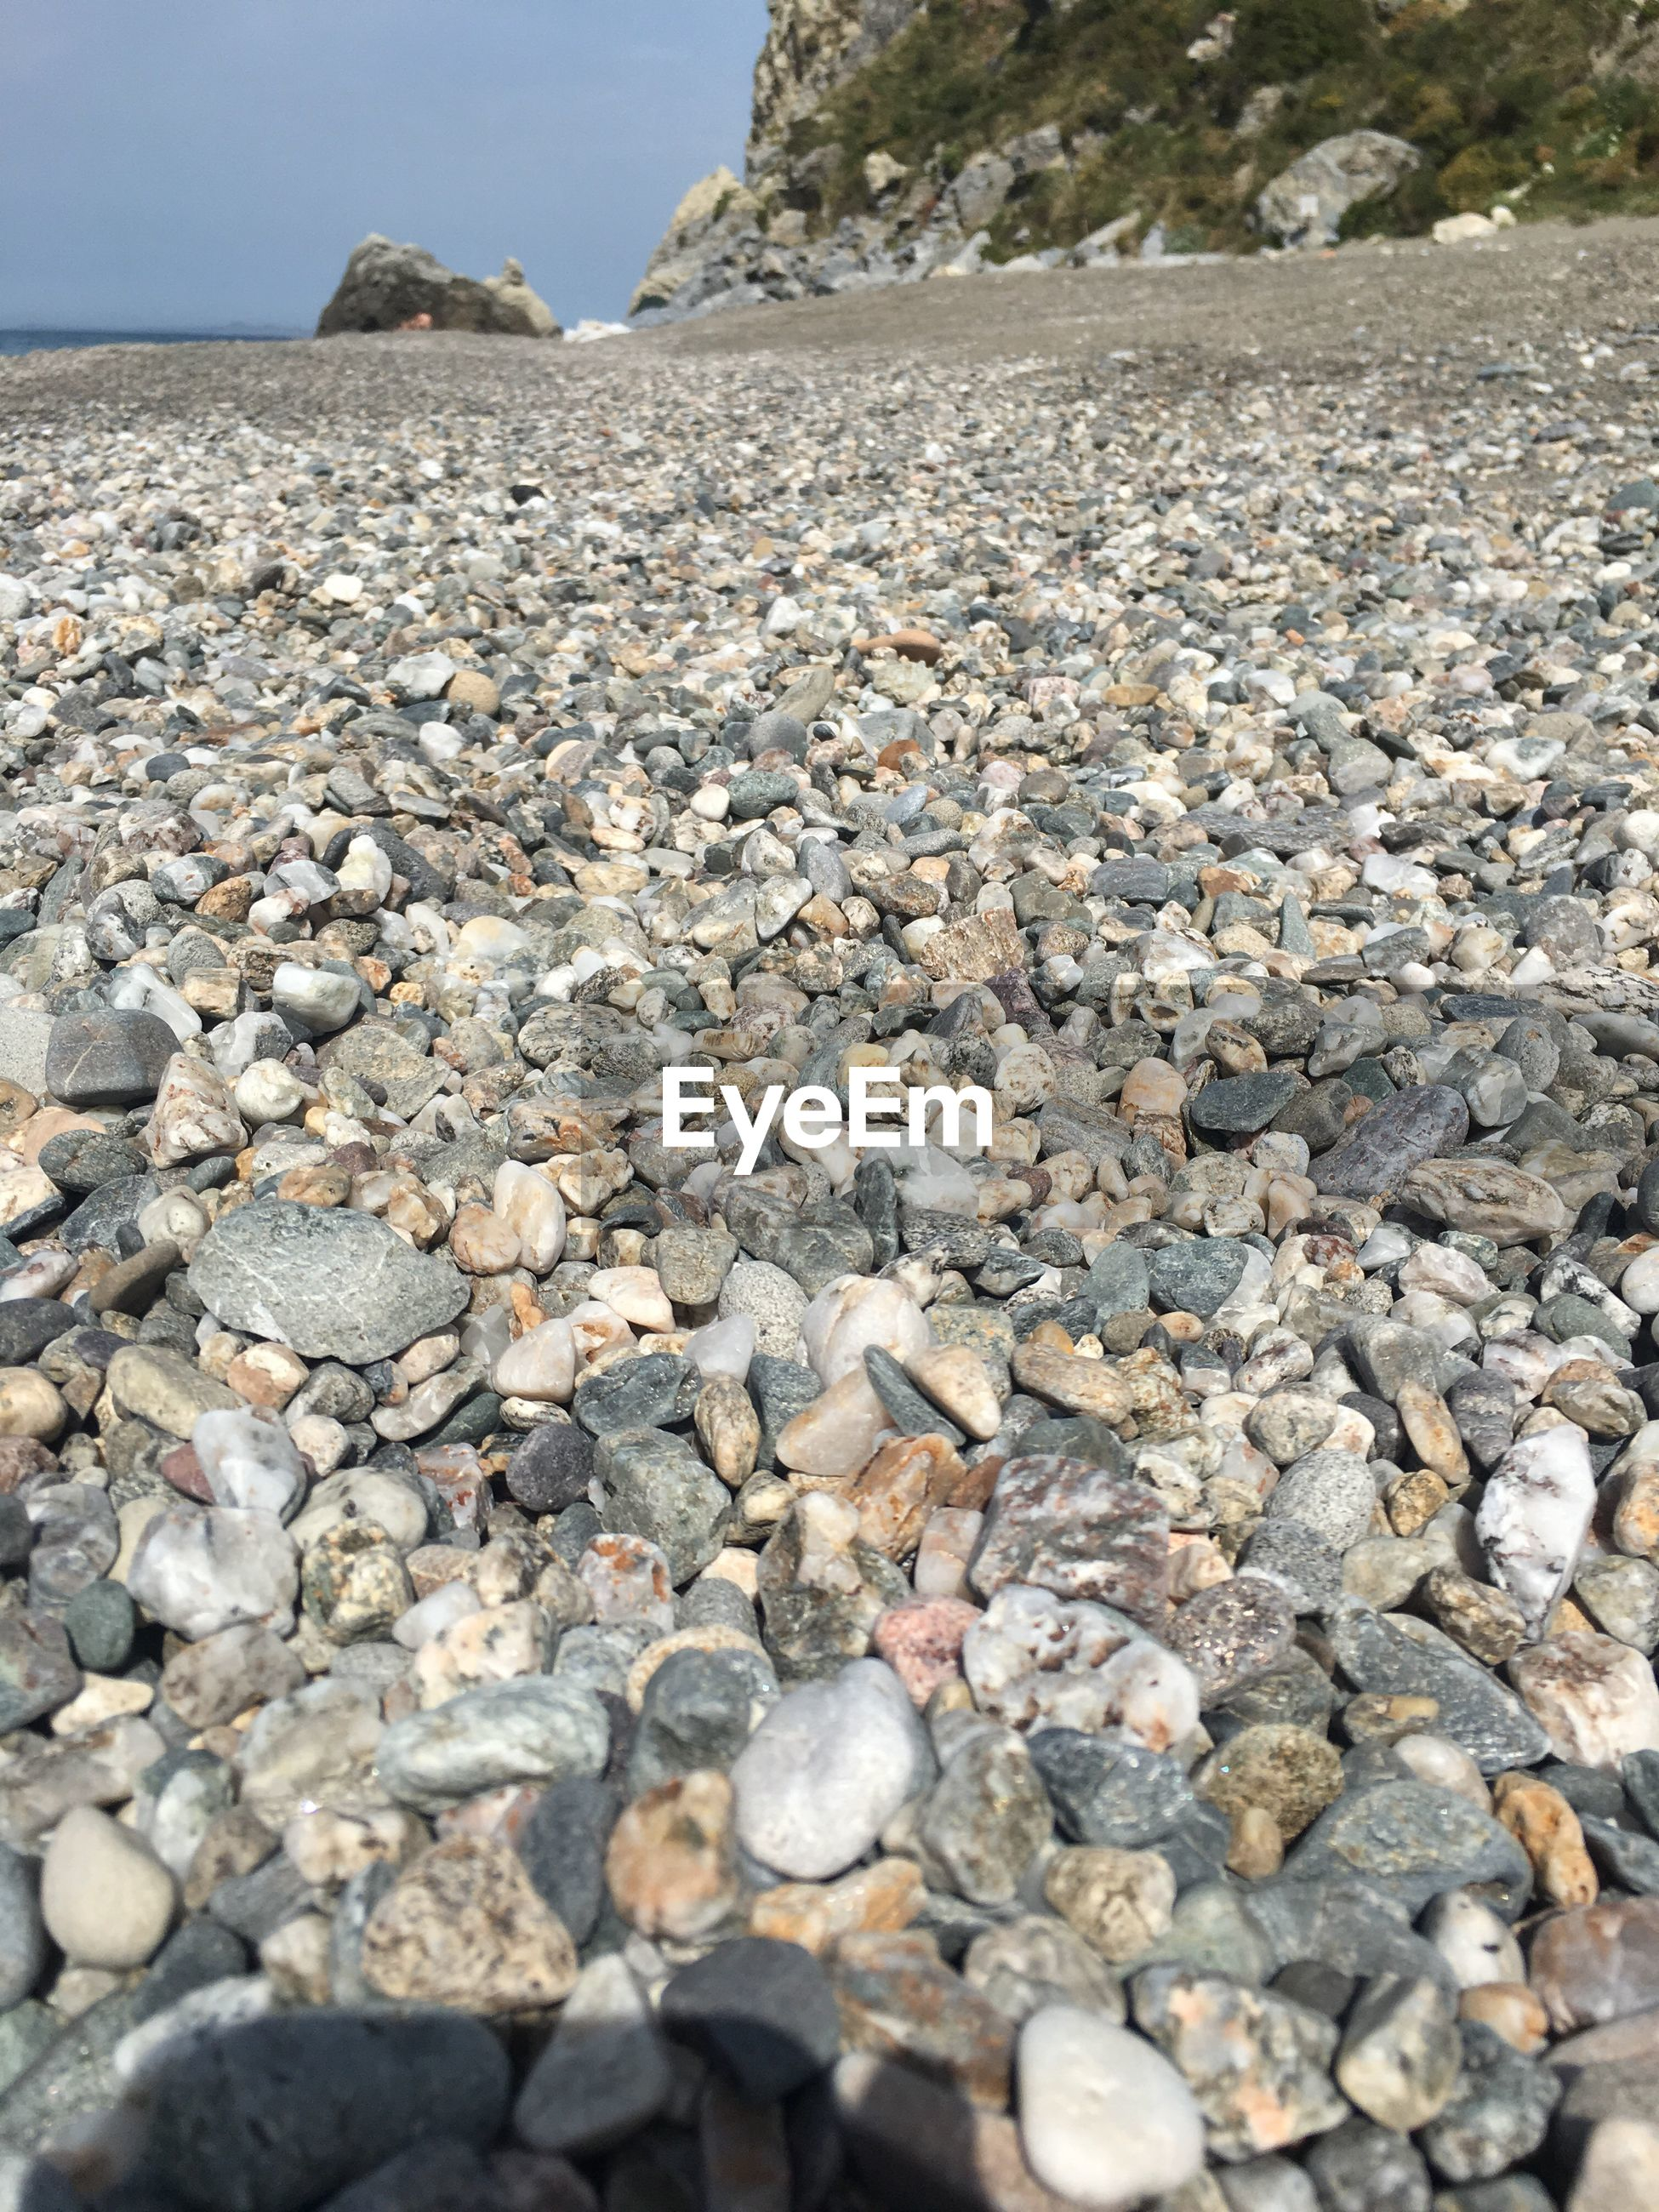 rock - object, pebble, stone - object, shore, beach, pebble beach, nature, outdoors, day, no people, sea, water, beauty in nature, sky, close-up